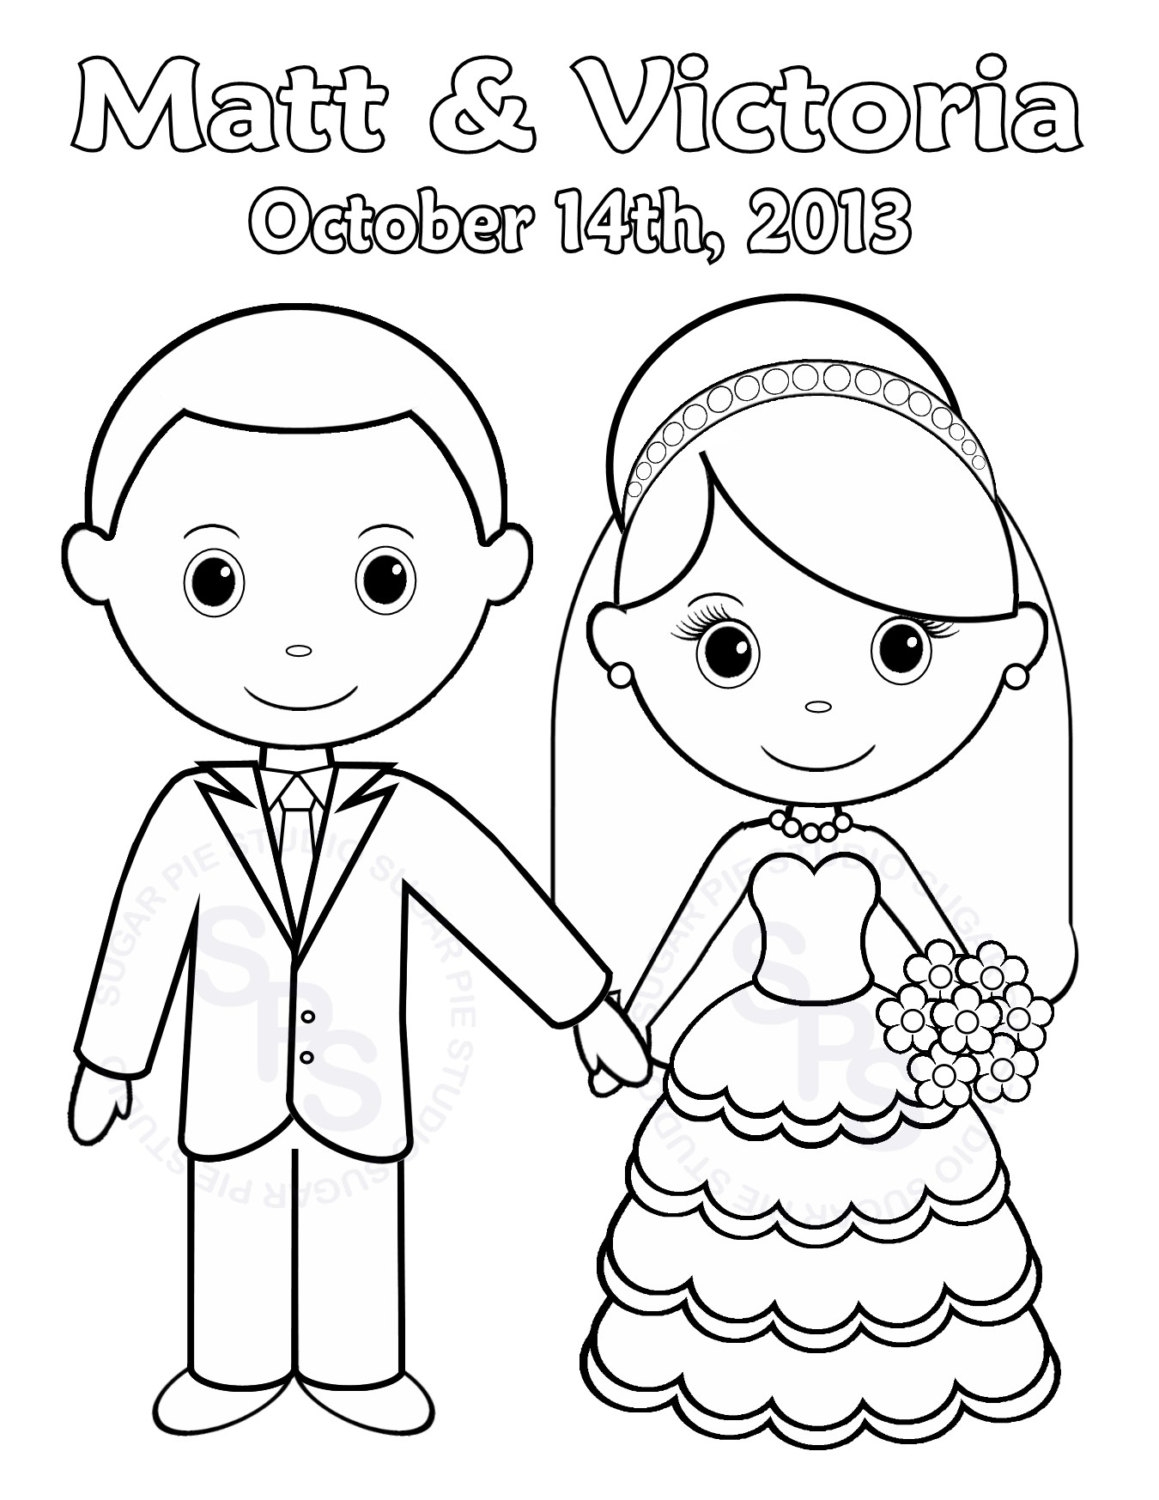 Wedding cartoon drawing at free for for Marriage coloring pages